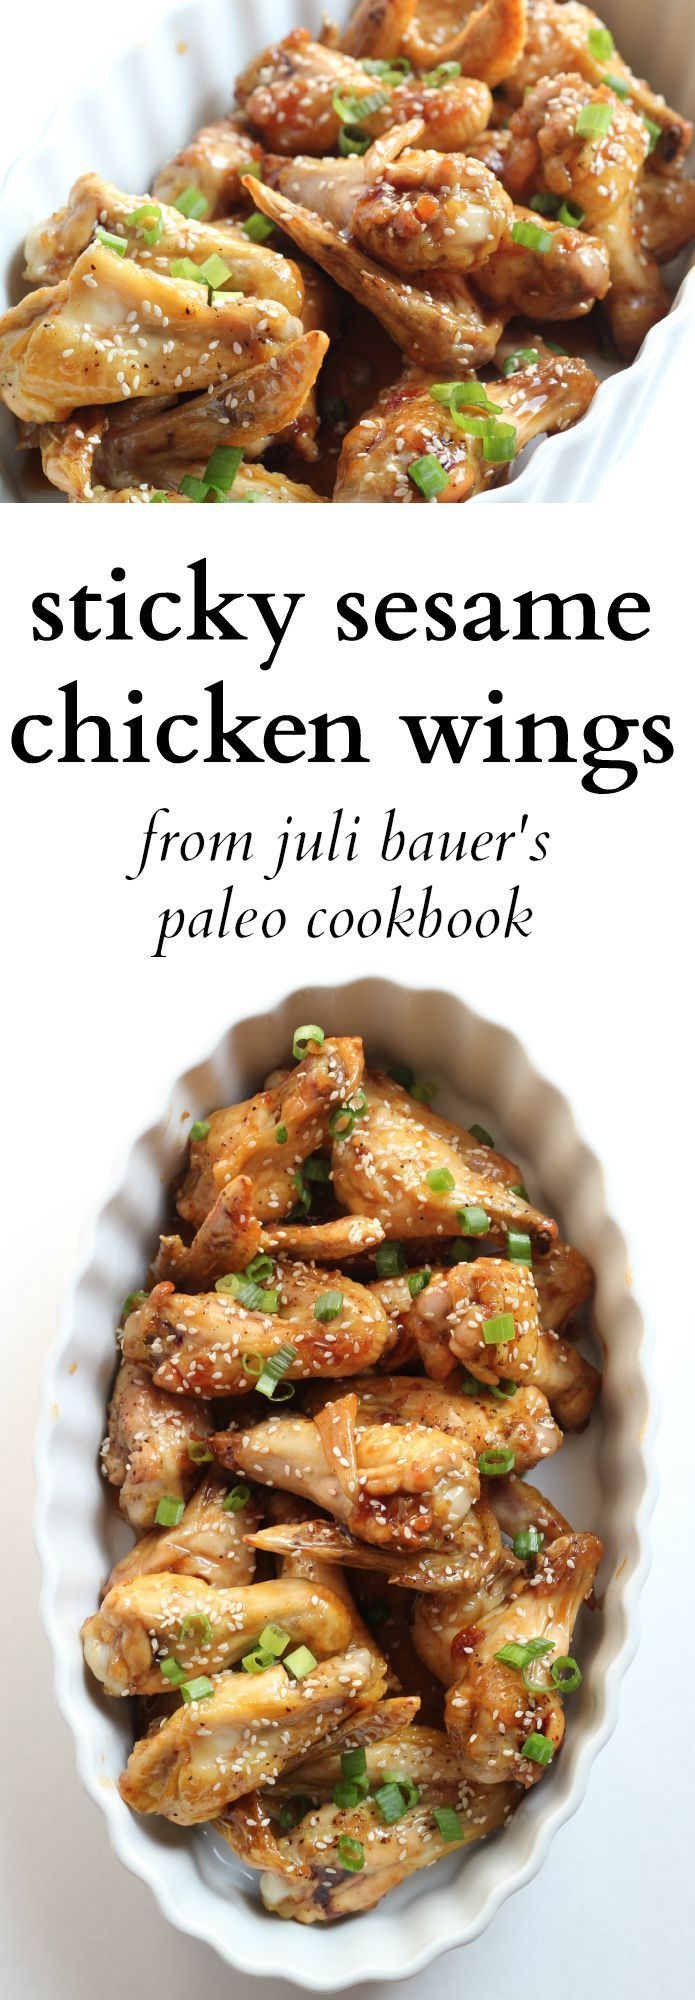 The BEST tailgating dish! You will not believe these wings are healthy and PALEO!